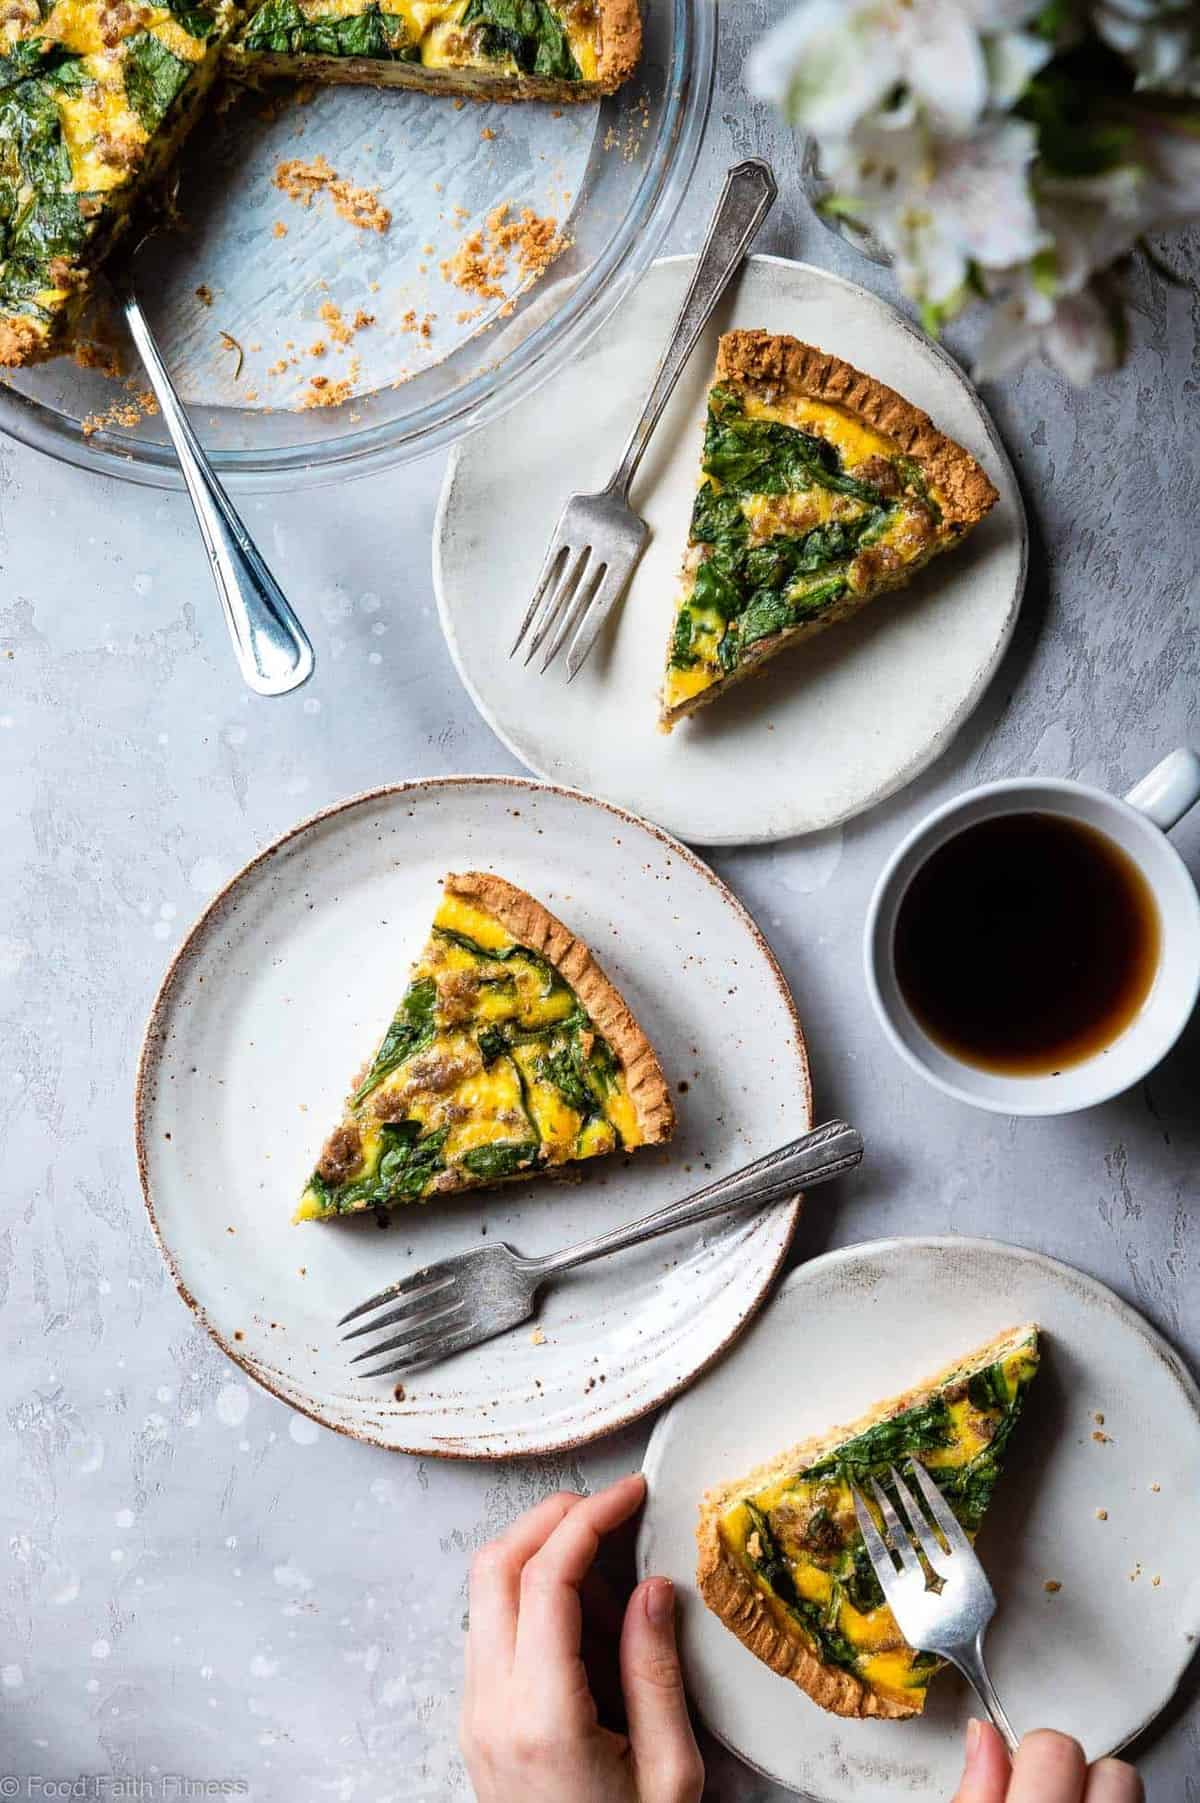 Gluten Free Low Carb Breakfast Quiche - This EASY low carb, dairy free and paleo Quiche has a homemade, buttery, flaky Almond Flour Crust! Sausage, spinach and eggs make a high protein, filling breakfast!  Great for meal prep! | #Foodfaithfitness |